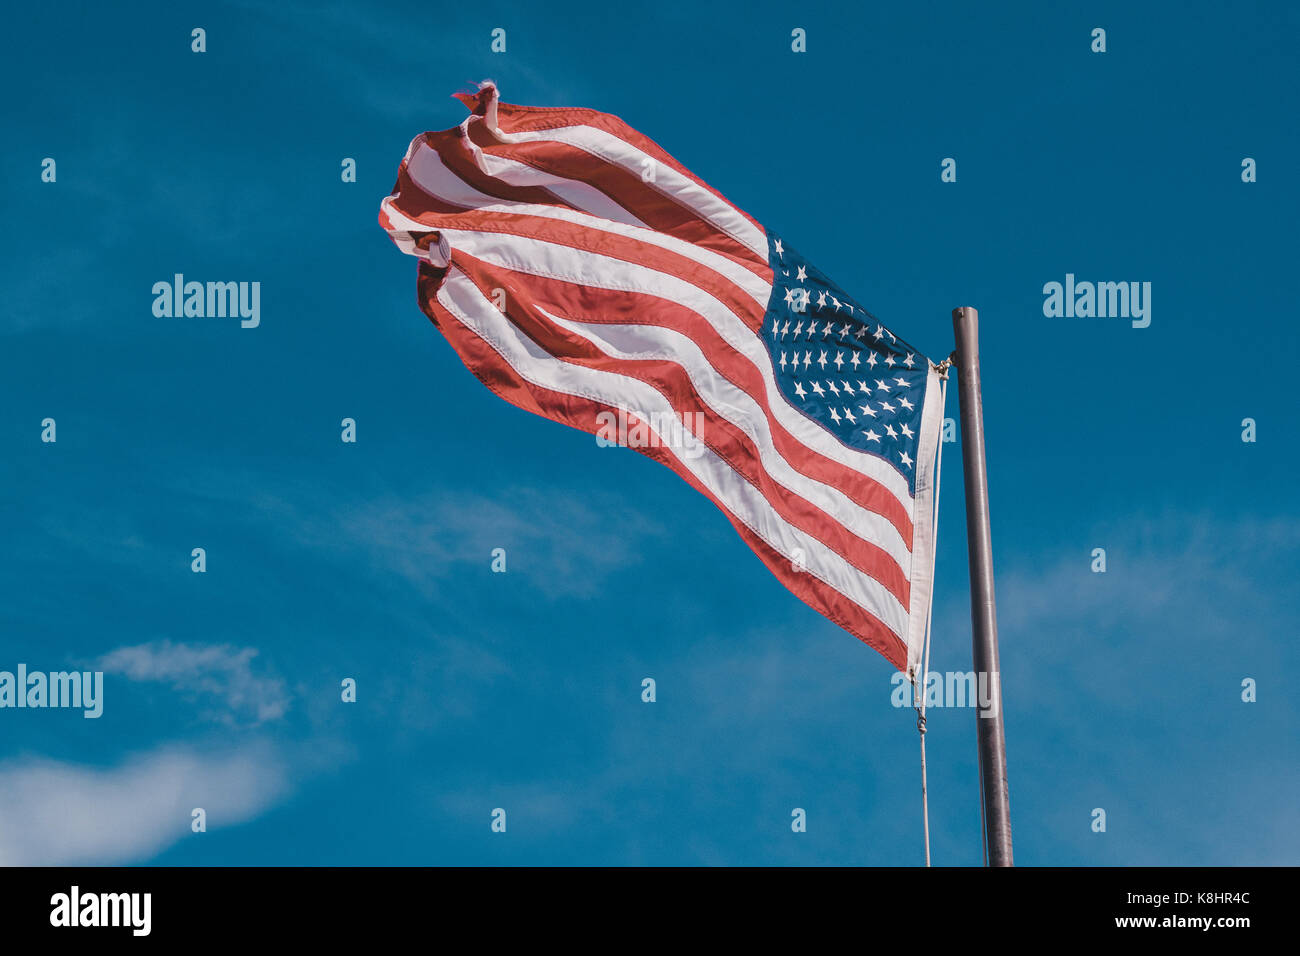 Low angle view of American Flag against blue sky Stock Photo